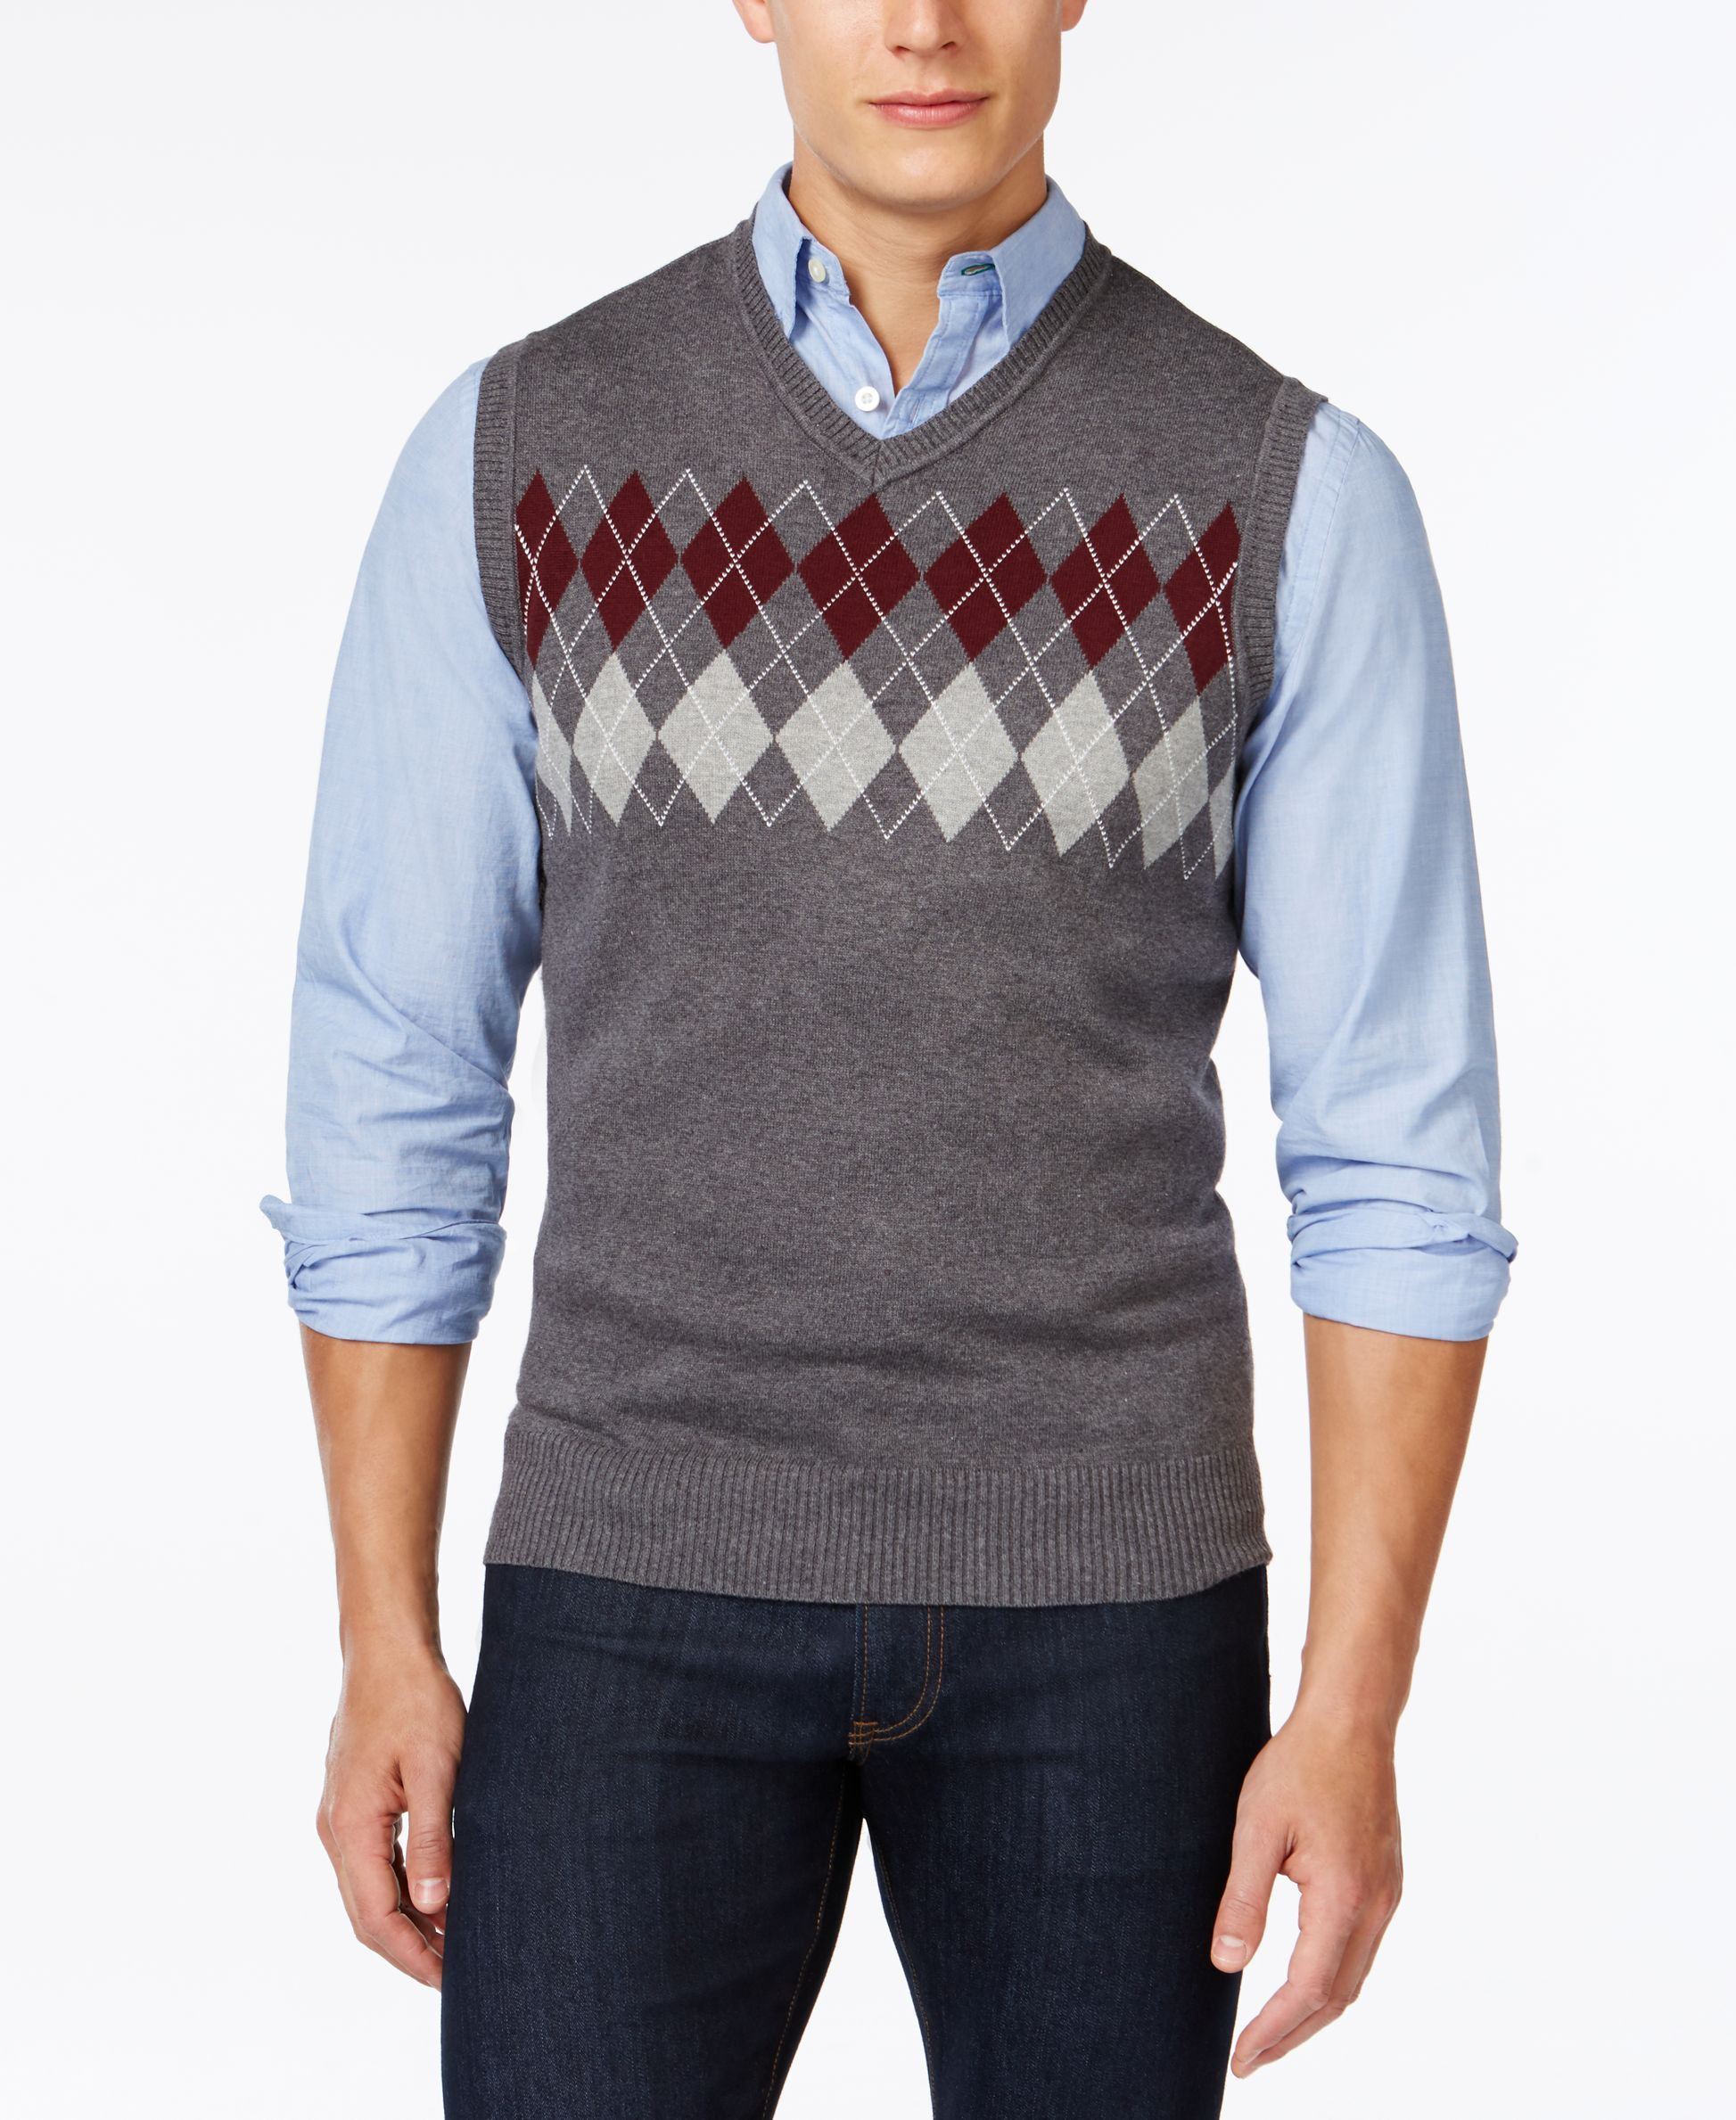 Club Room Big and Tall Argyle Sweater Vest, Only at Macy's | moda ...